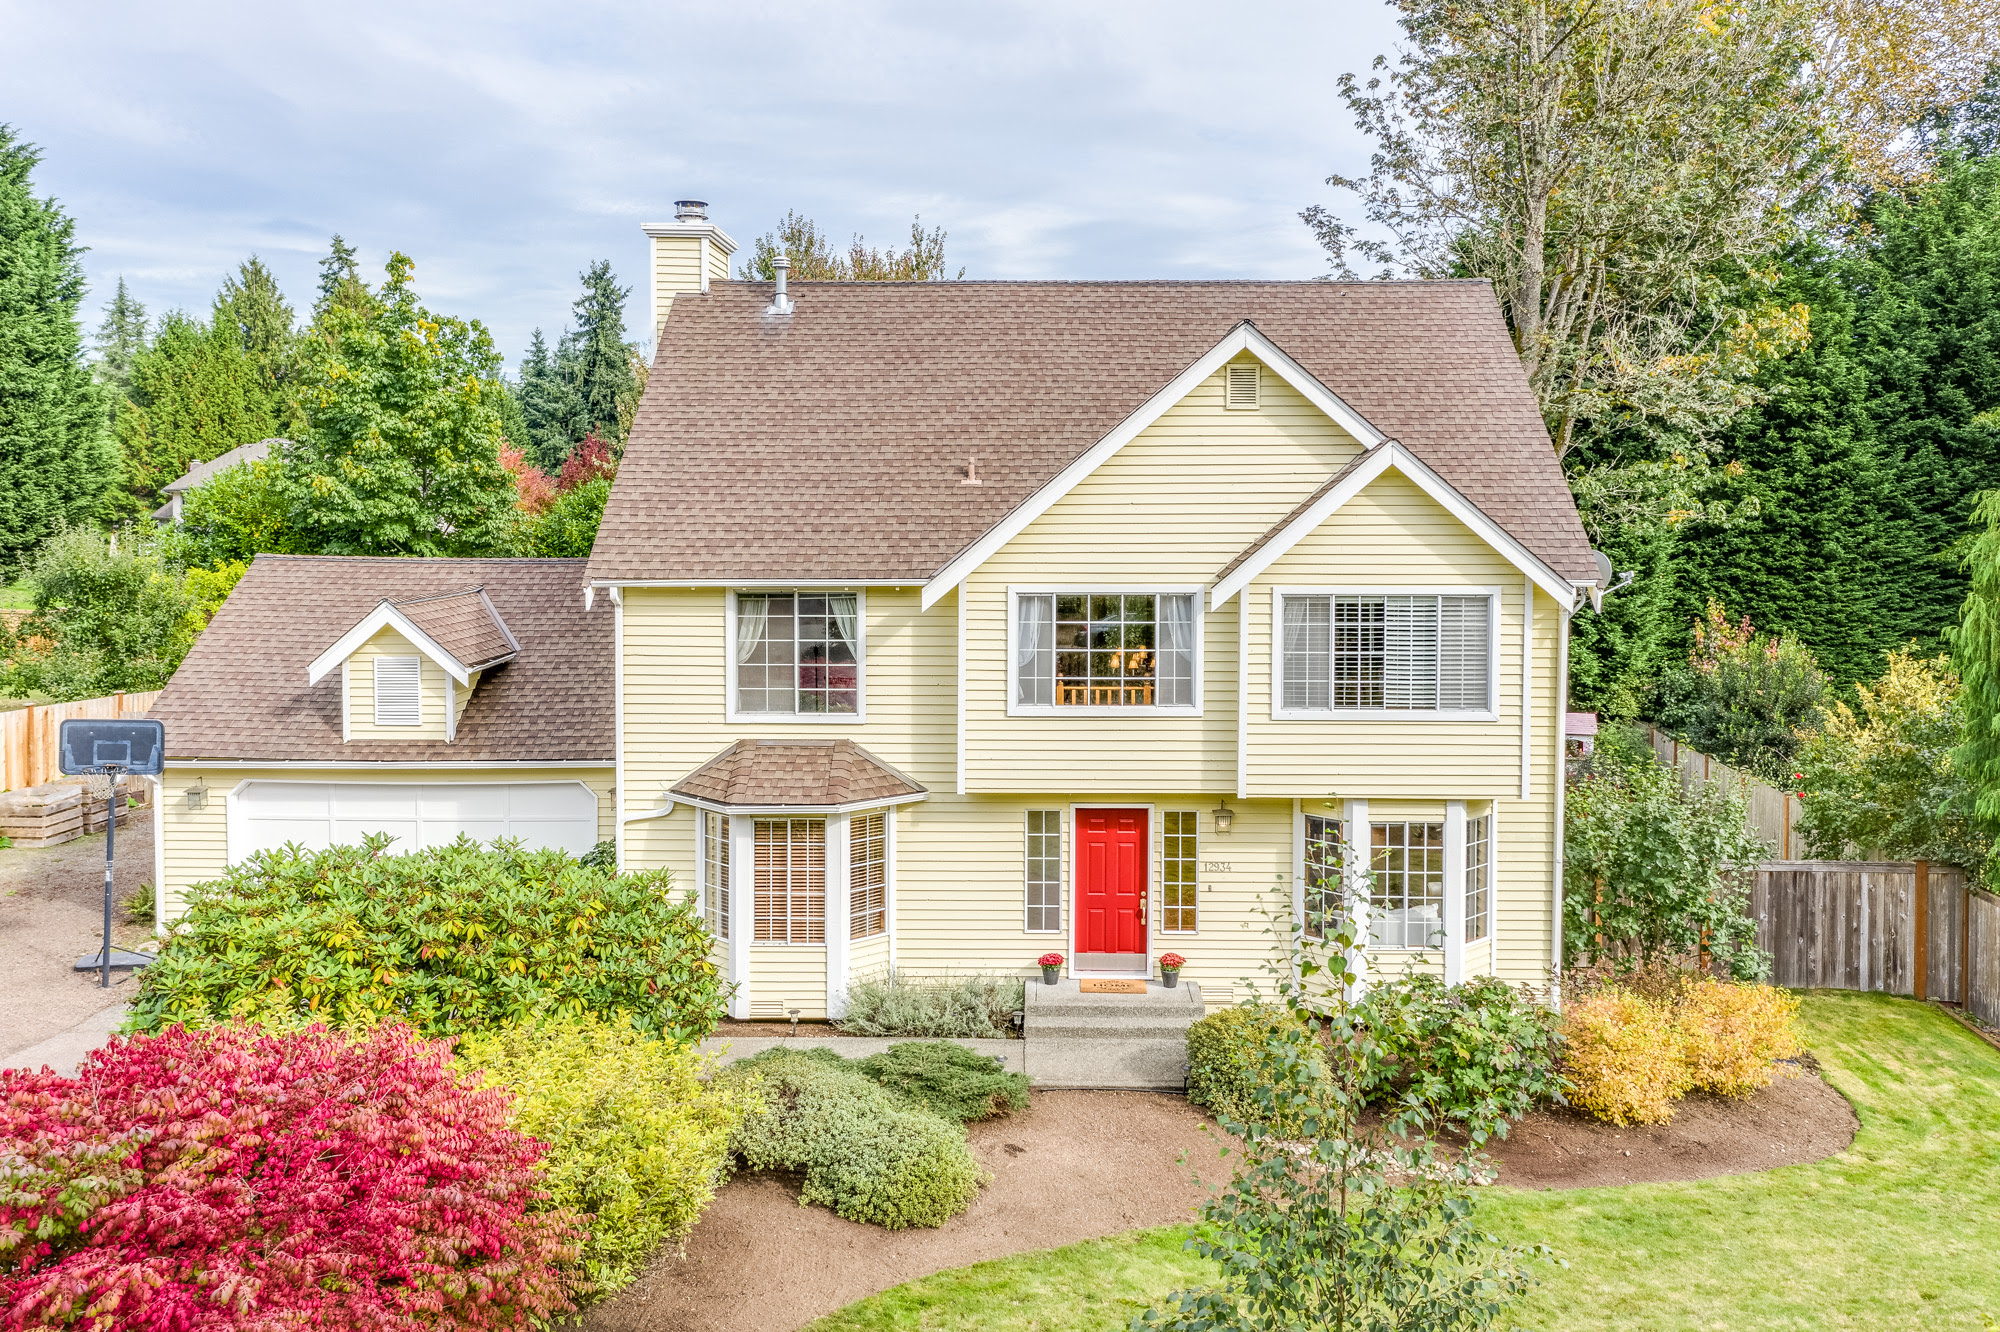 Sold Spacious And Inviting 4 Bedroom 2 5 Bathroom Home With Den And Serene Fully Fenced Yard On English Hill In Redmond Eastsidehomes Com